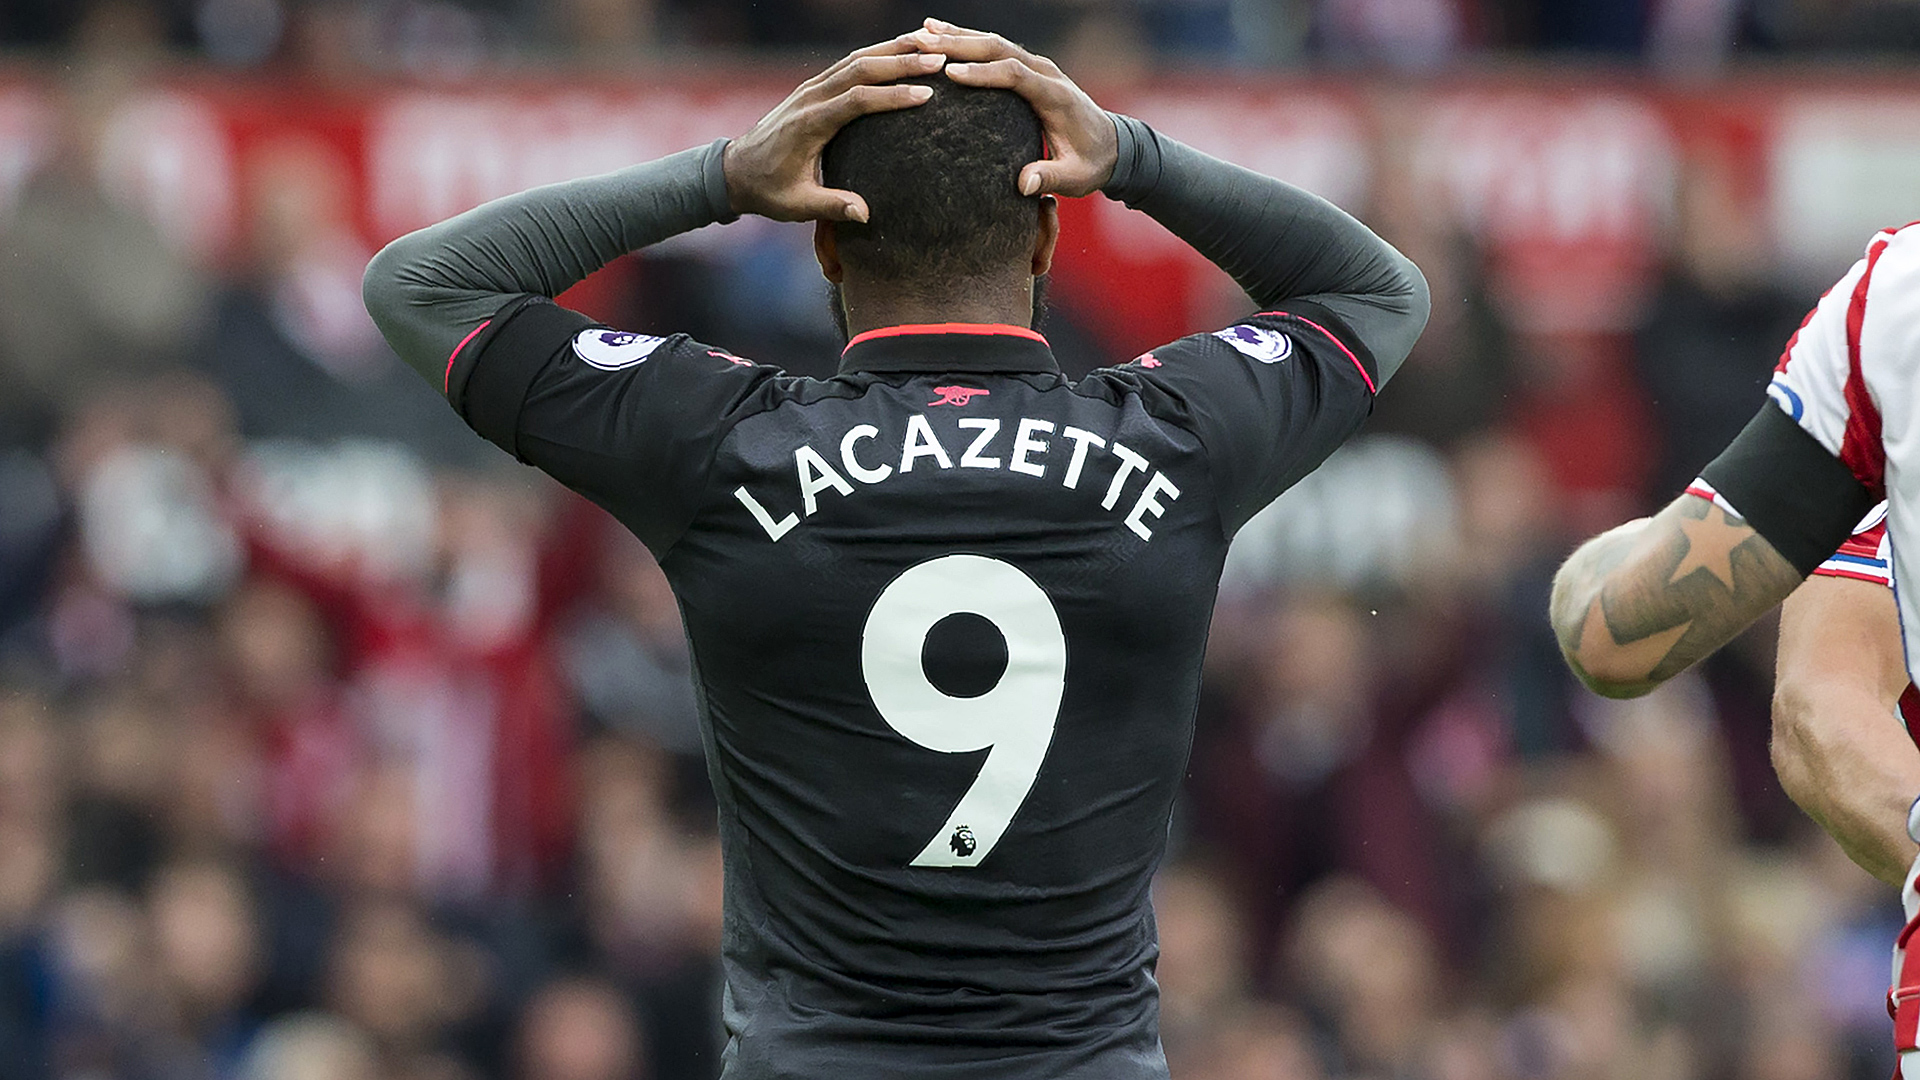 Alexandre Lacazette FC Arsenal Stoke City 08192017